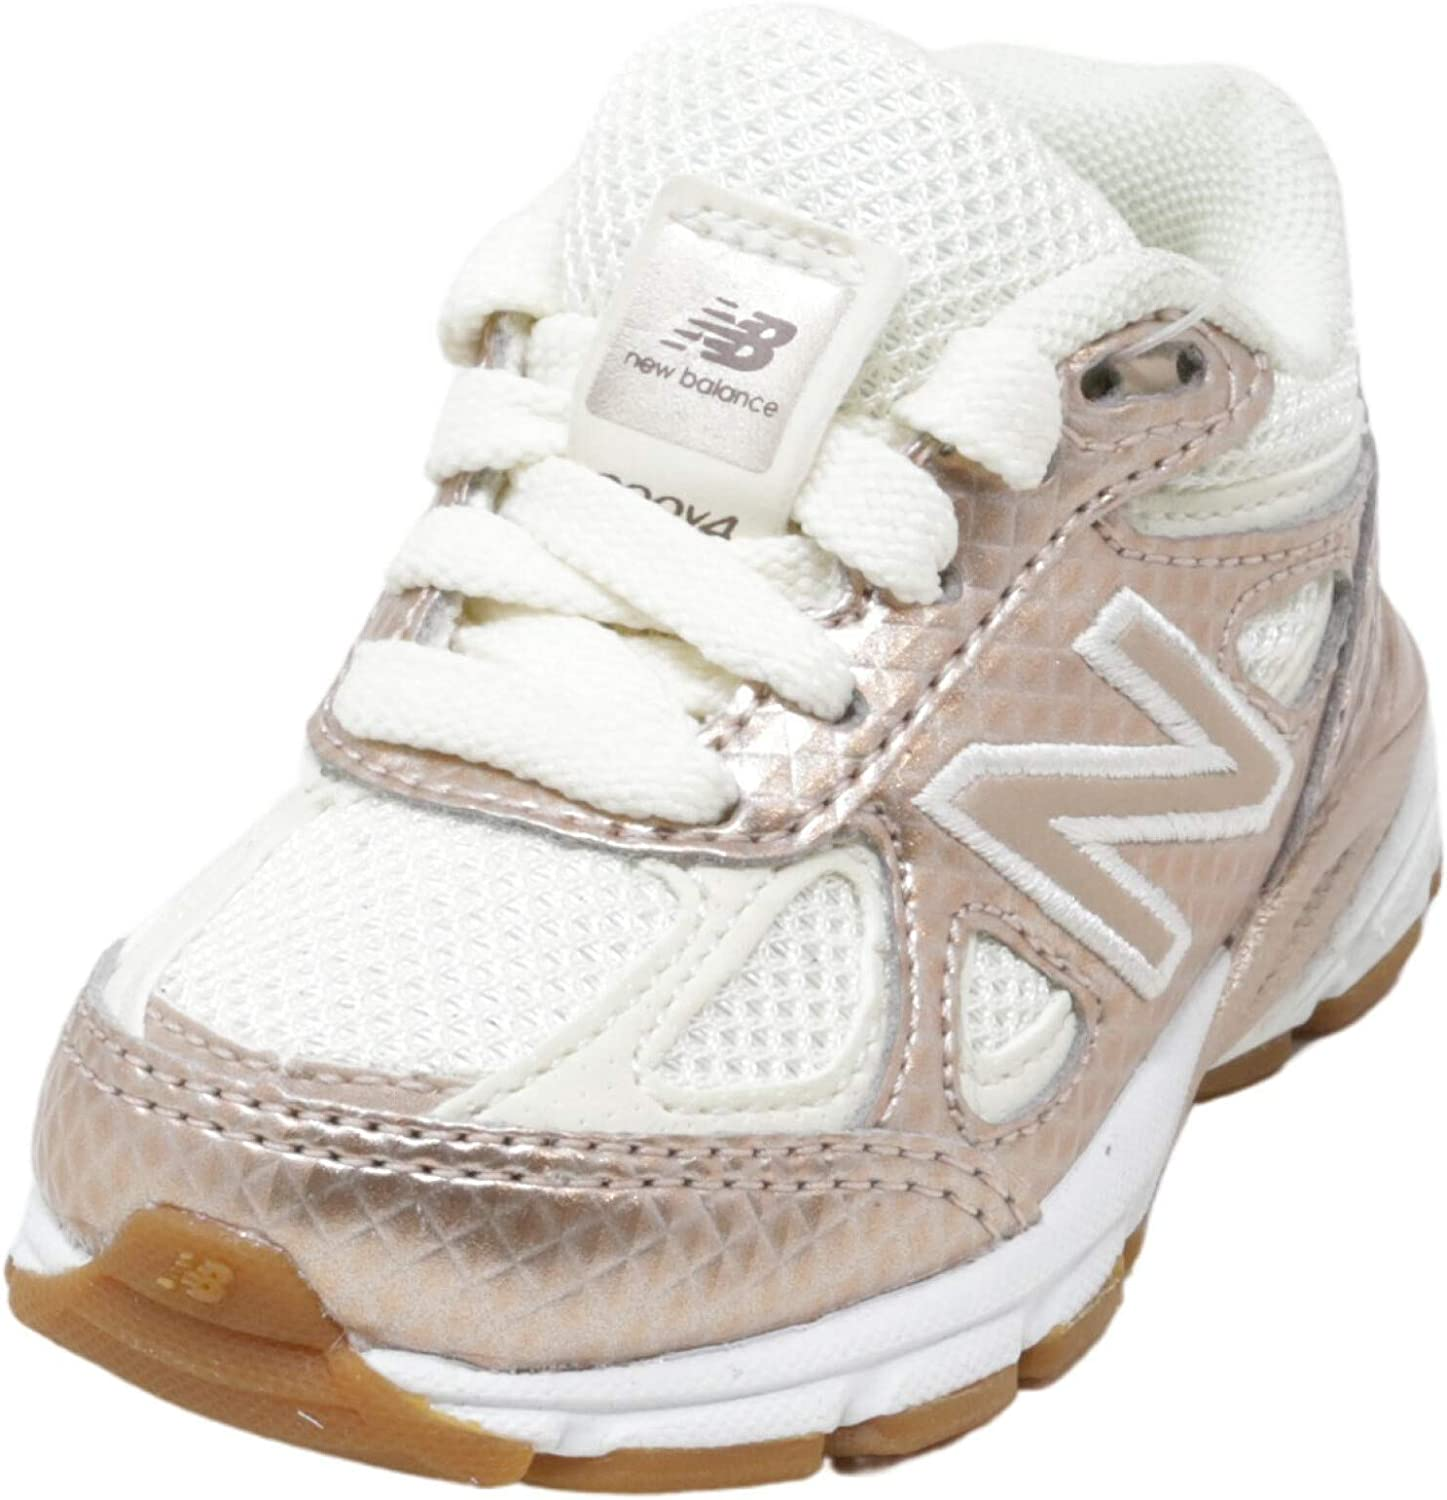 New Max 61% OFF Balance Excellent Unisex-Child Made in Sneaker V4 990 Us